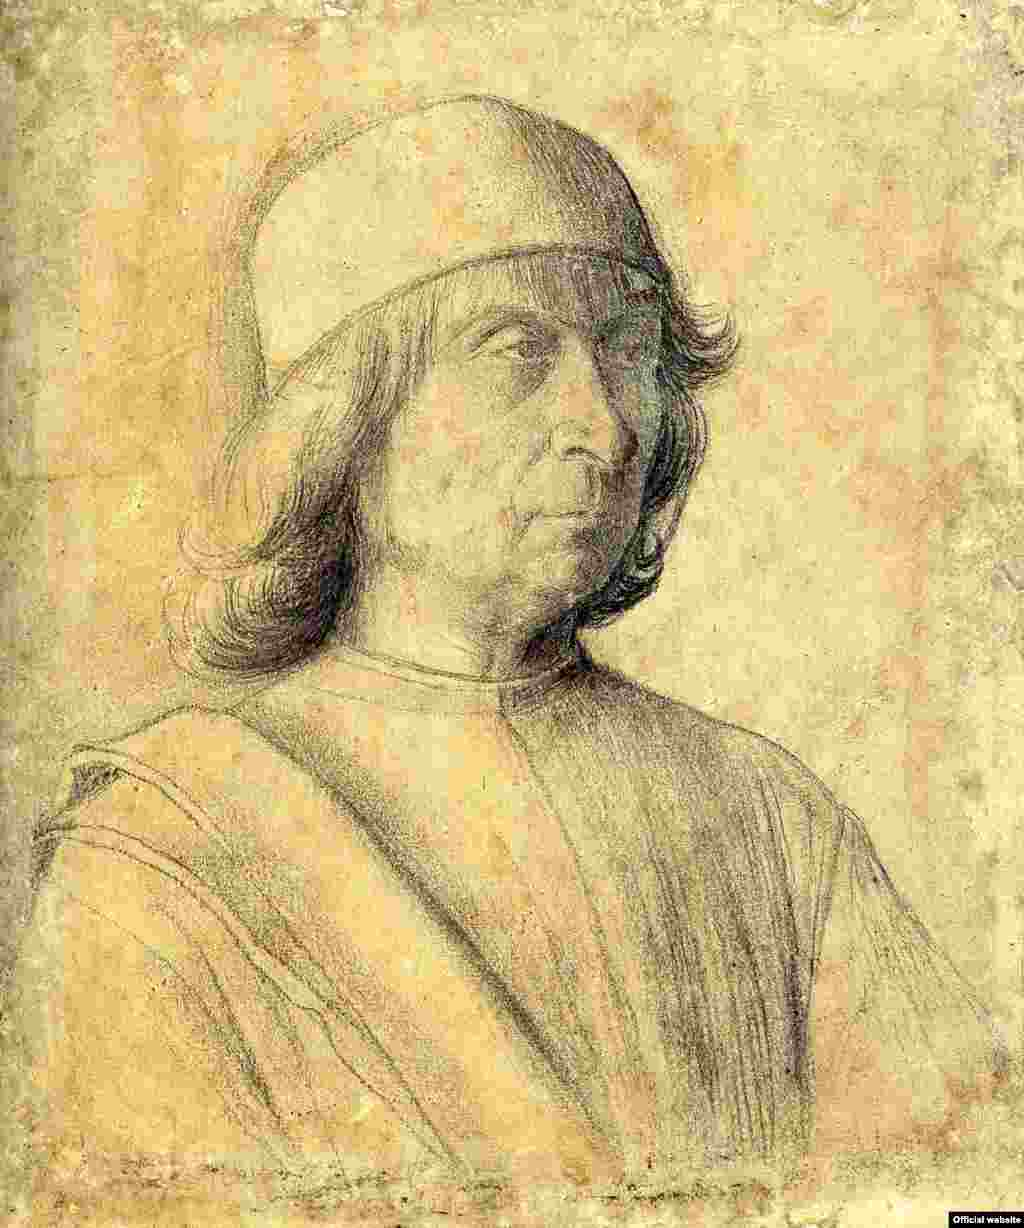 Gentile Bellini Portretul unui bărbat (autoportret?), c 1496 Berlin, National Museums in Berlin, Kupferstichkabinett © National Museums in Berlin, Jörg P. Anders (photo: Bode Musem press service courtesy)